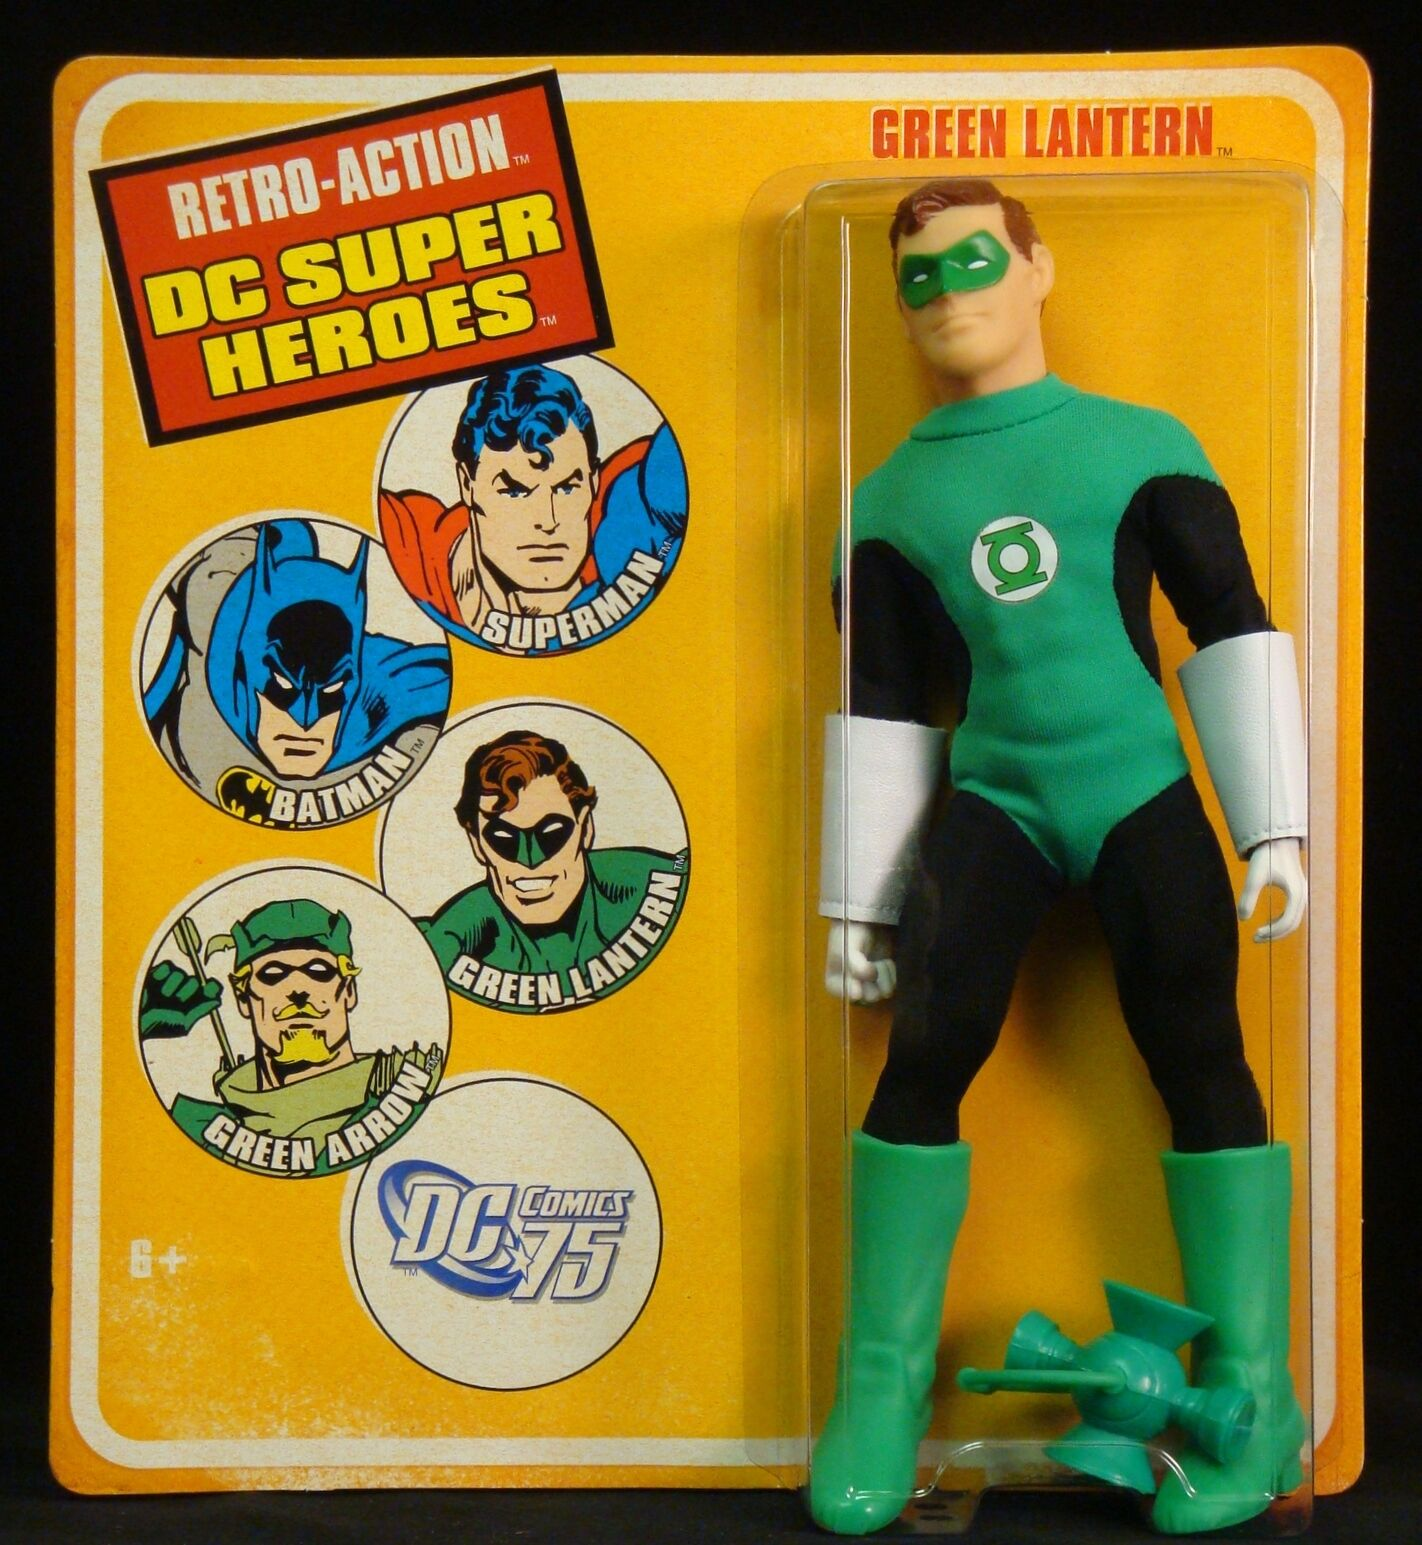 2010 DC MATTEL RETRO-ACTION DC SUPER HEROES GREEN LANTERN 8  ACTION FIGURE MOC